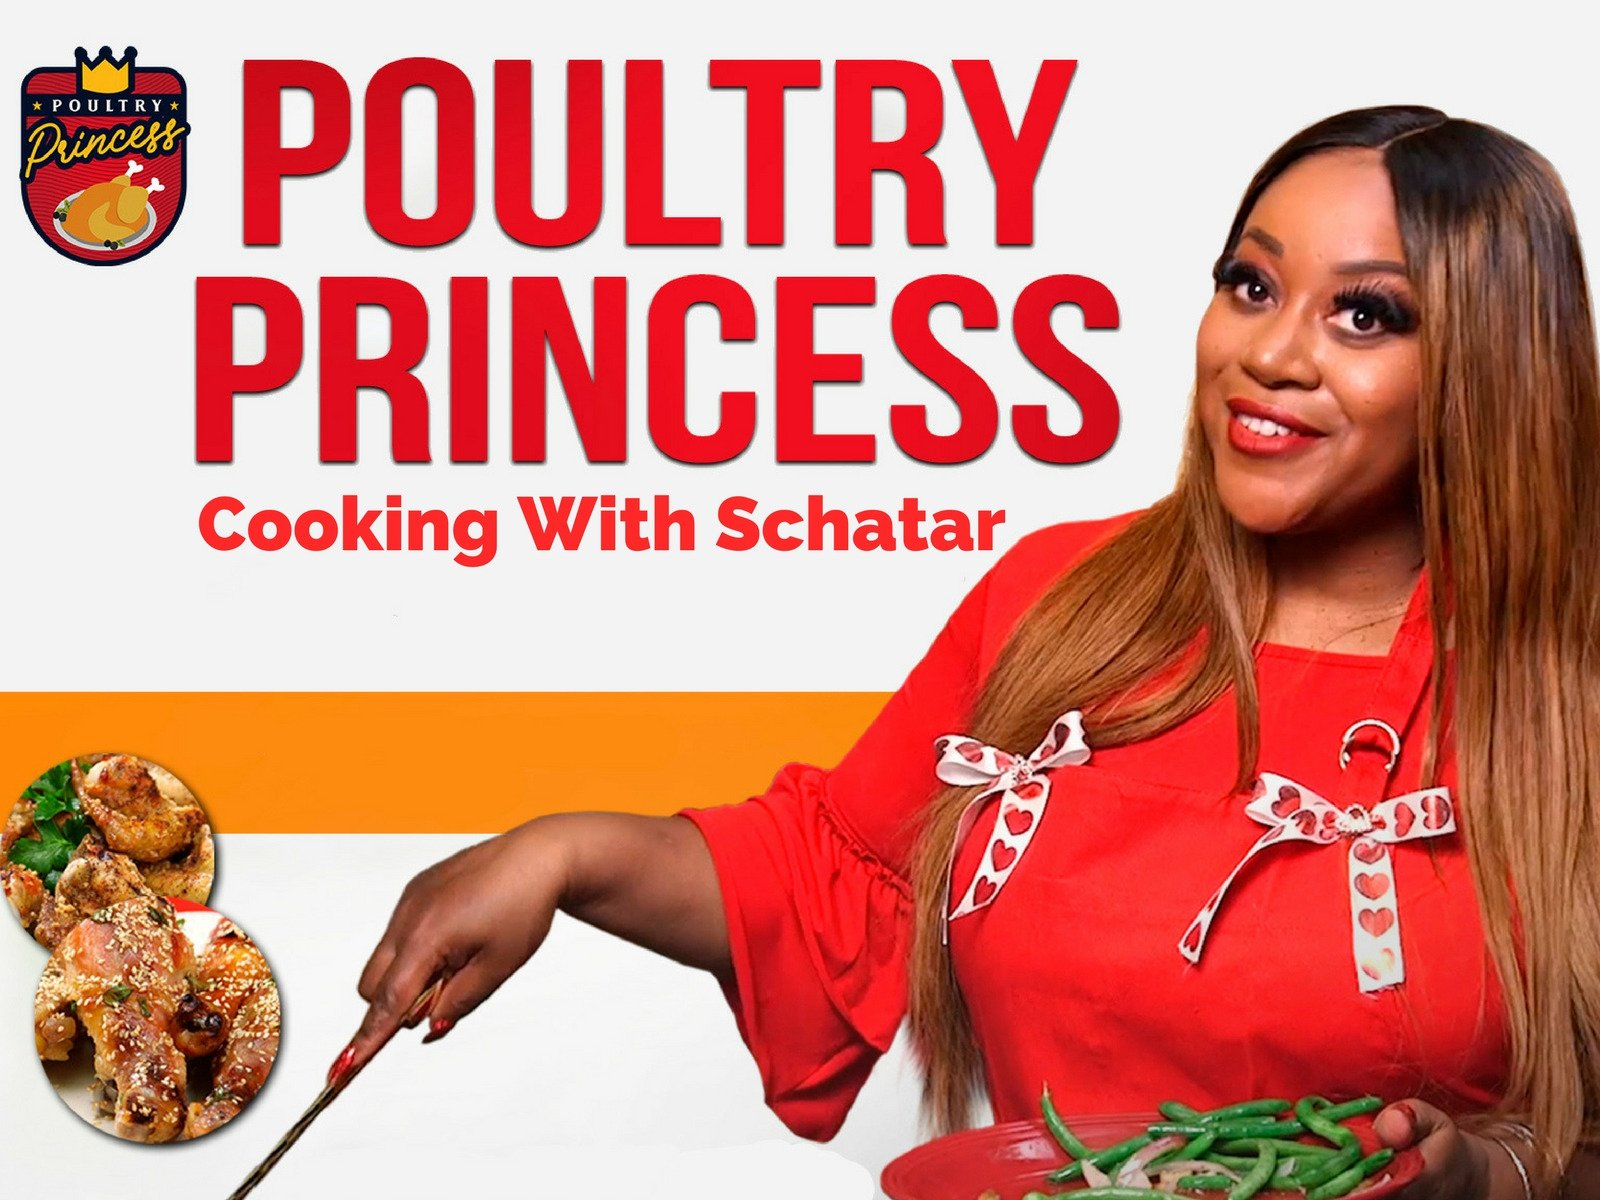 Poultry Princess Cooking With Schatar